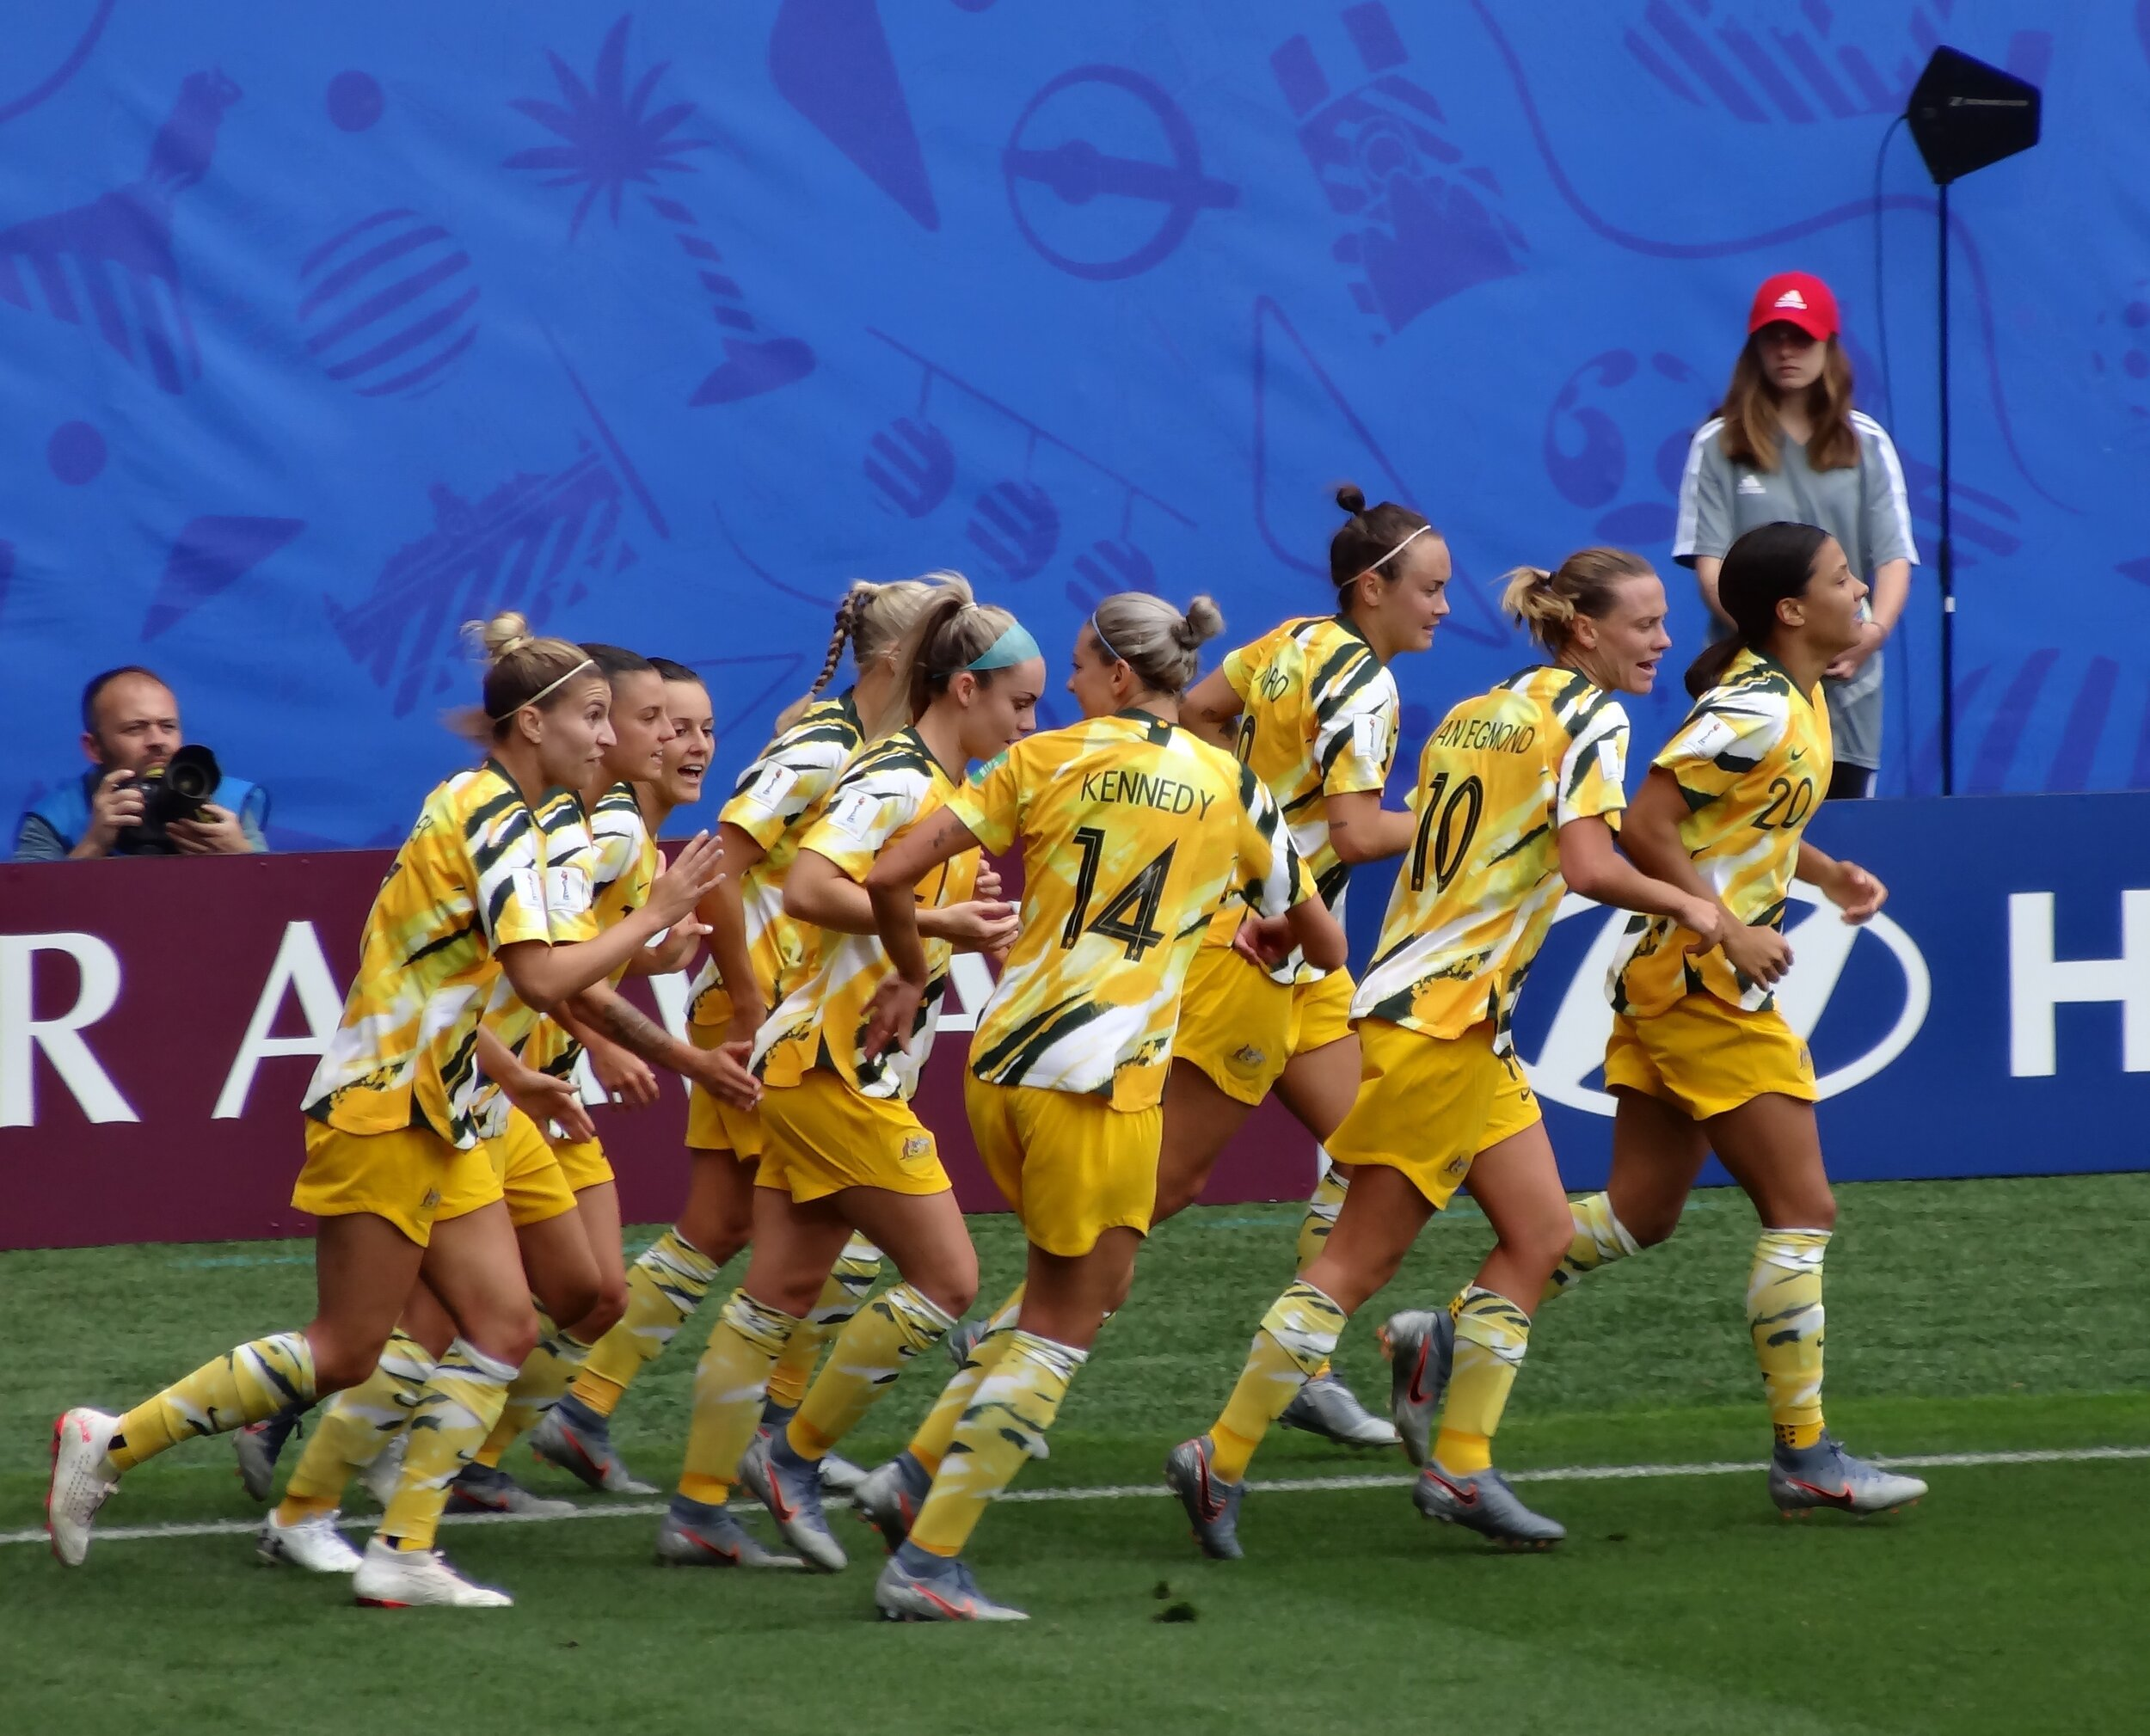 The Matildas during the 2019 FIFA Women's World Cup. Photograph by    Liondartois   , used with permission under the    CC BY-SA 4.0   .